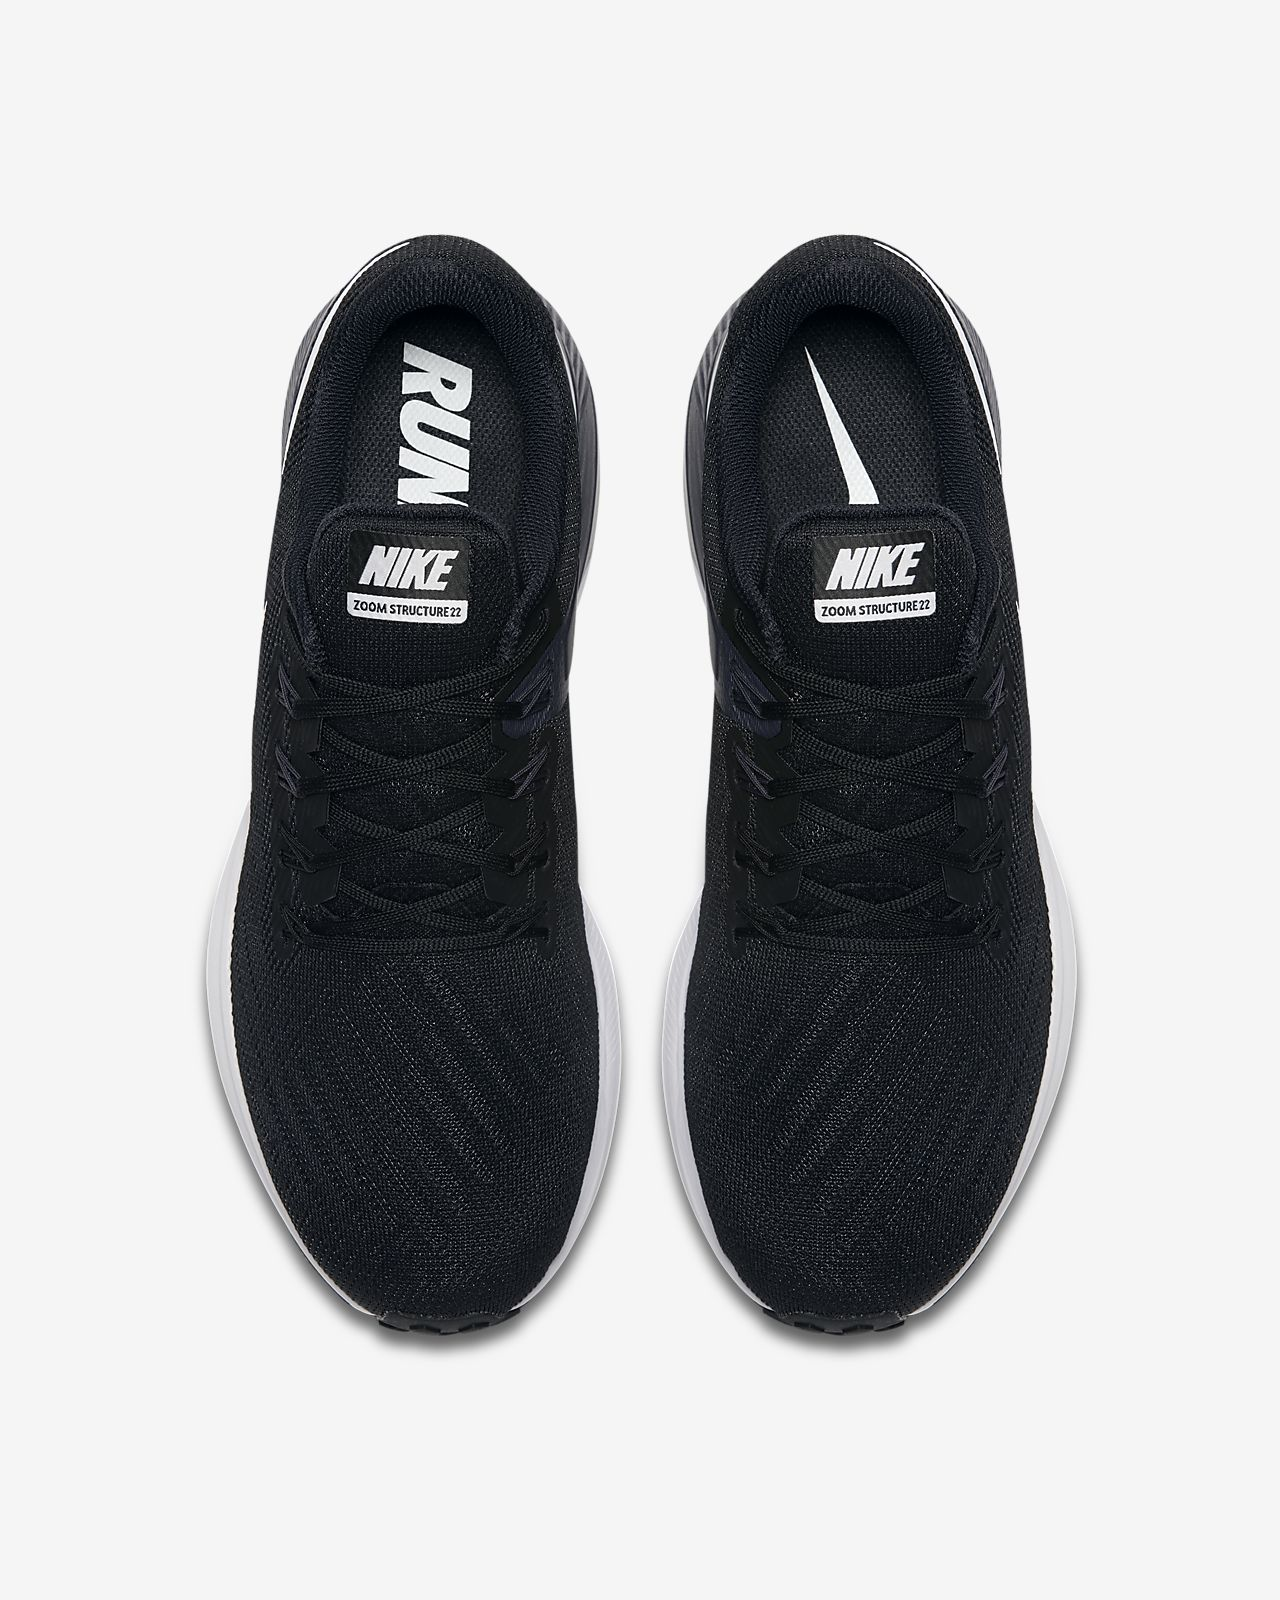 hot sale online 66f66 4f154 Nike Air Zoom Structure 22 Men's Running Shoe